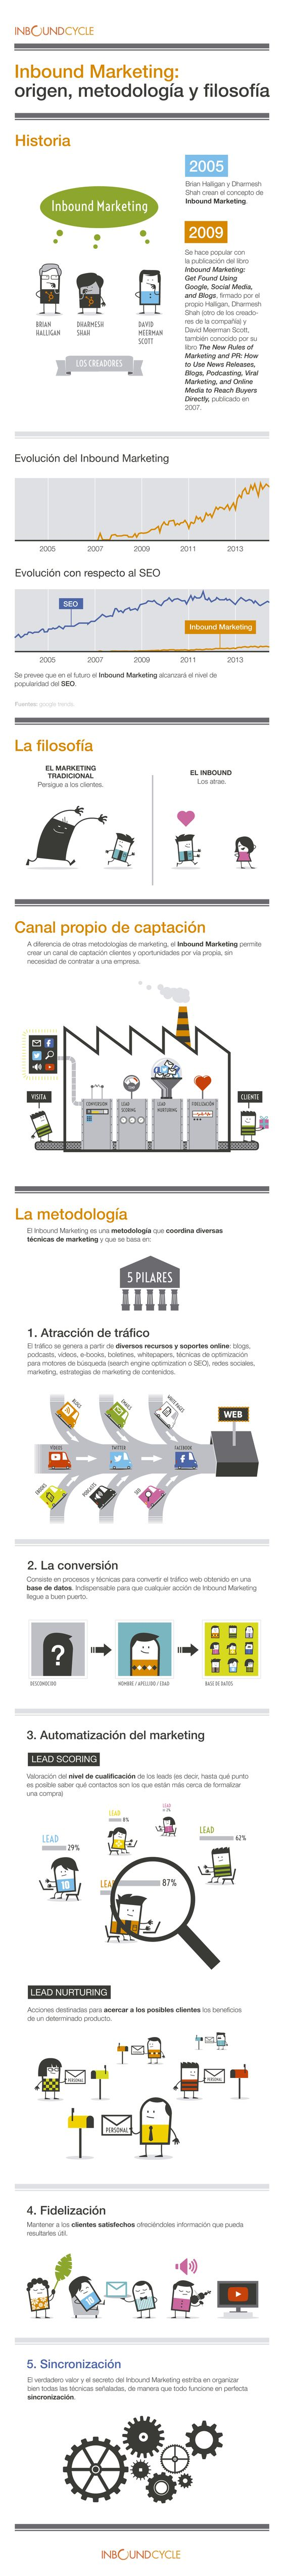 Inbound marketing. Origen, filosofía y metodología